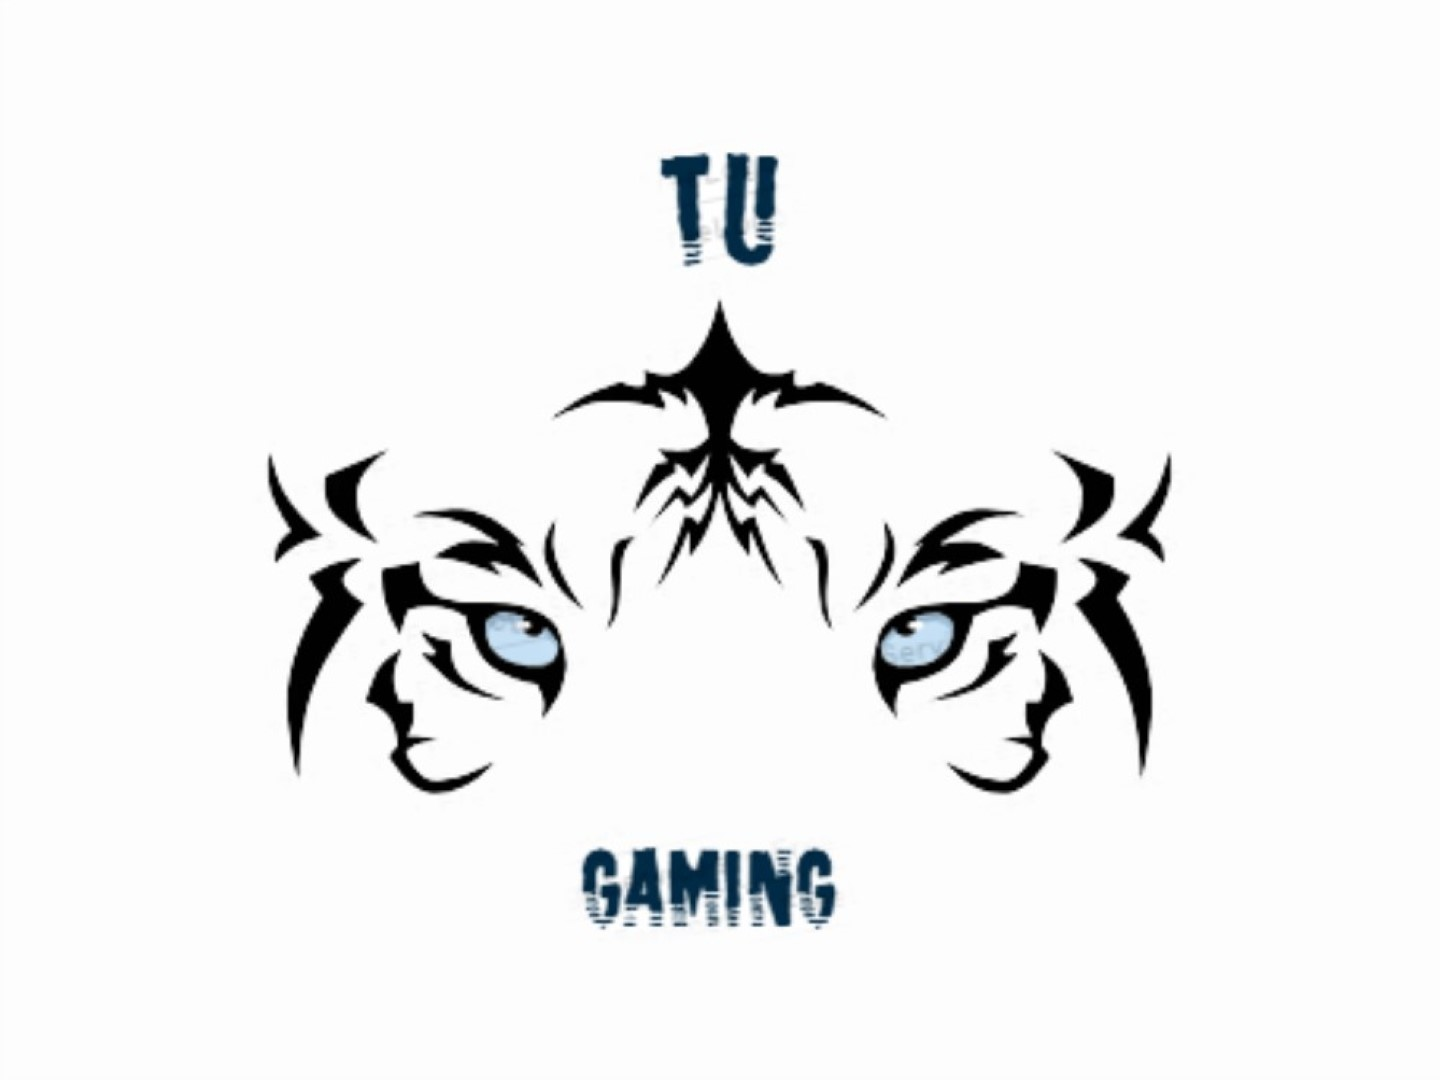 TUGaming Broadcast Funding